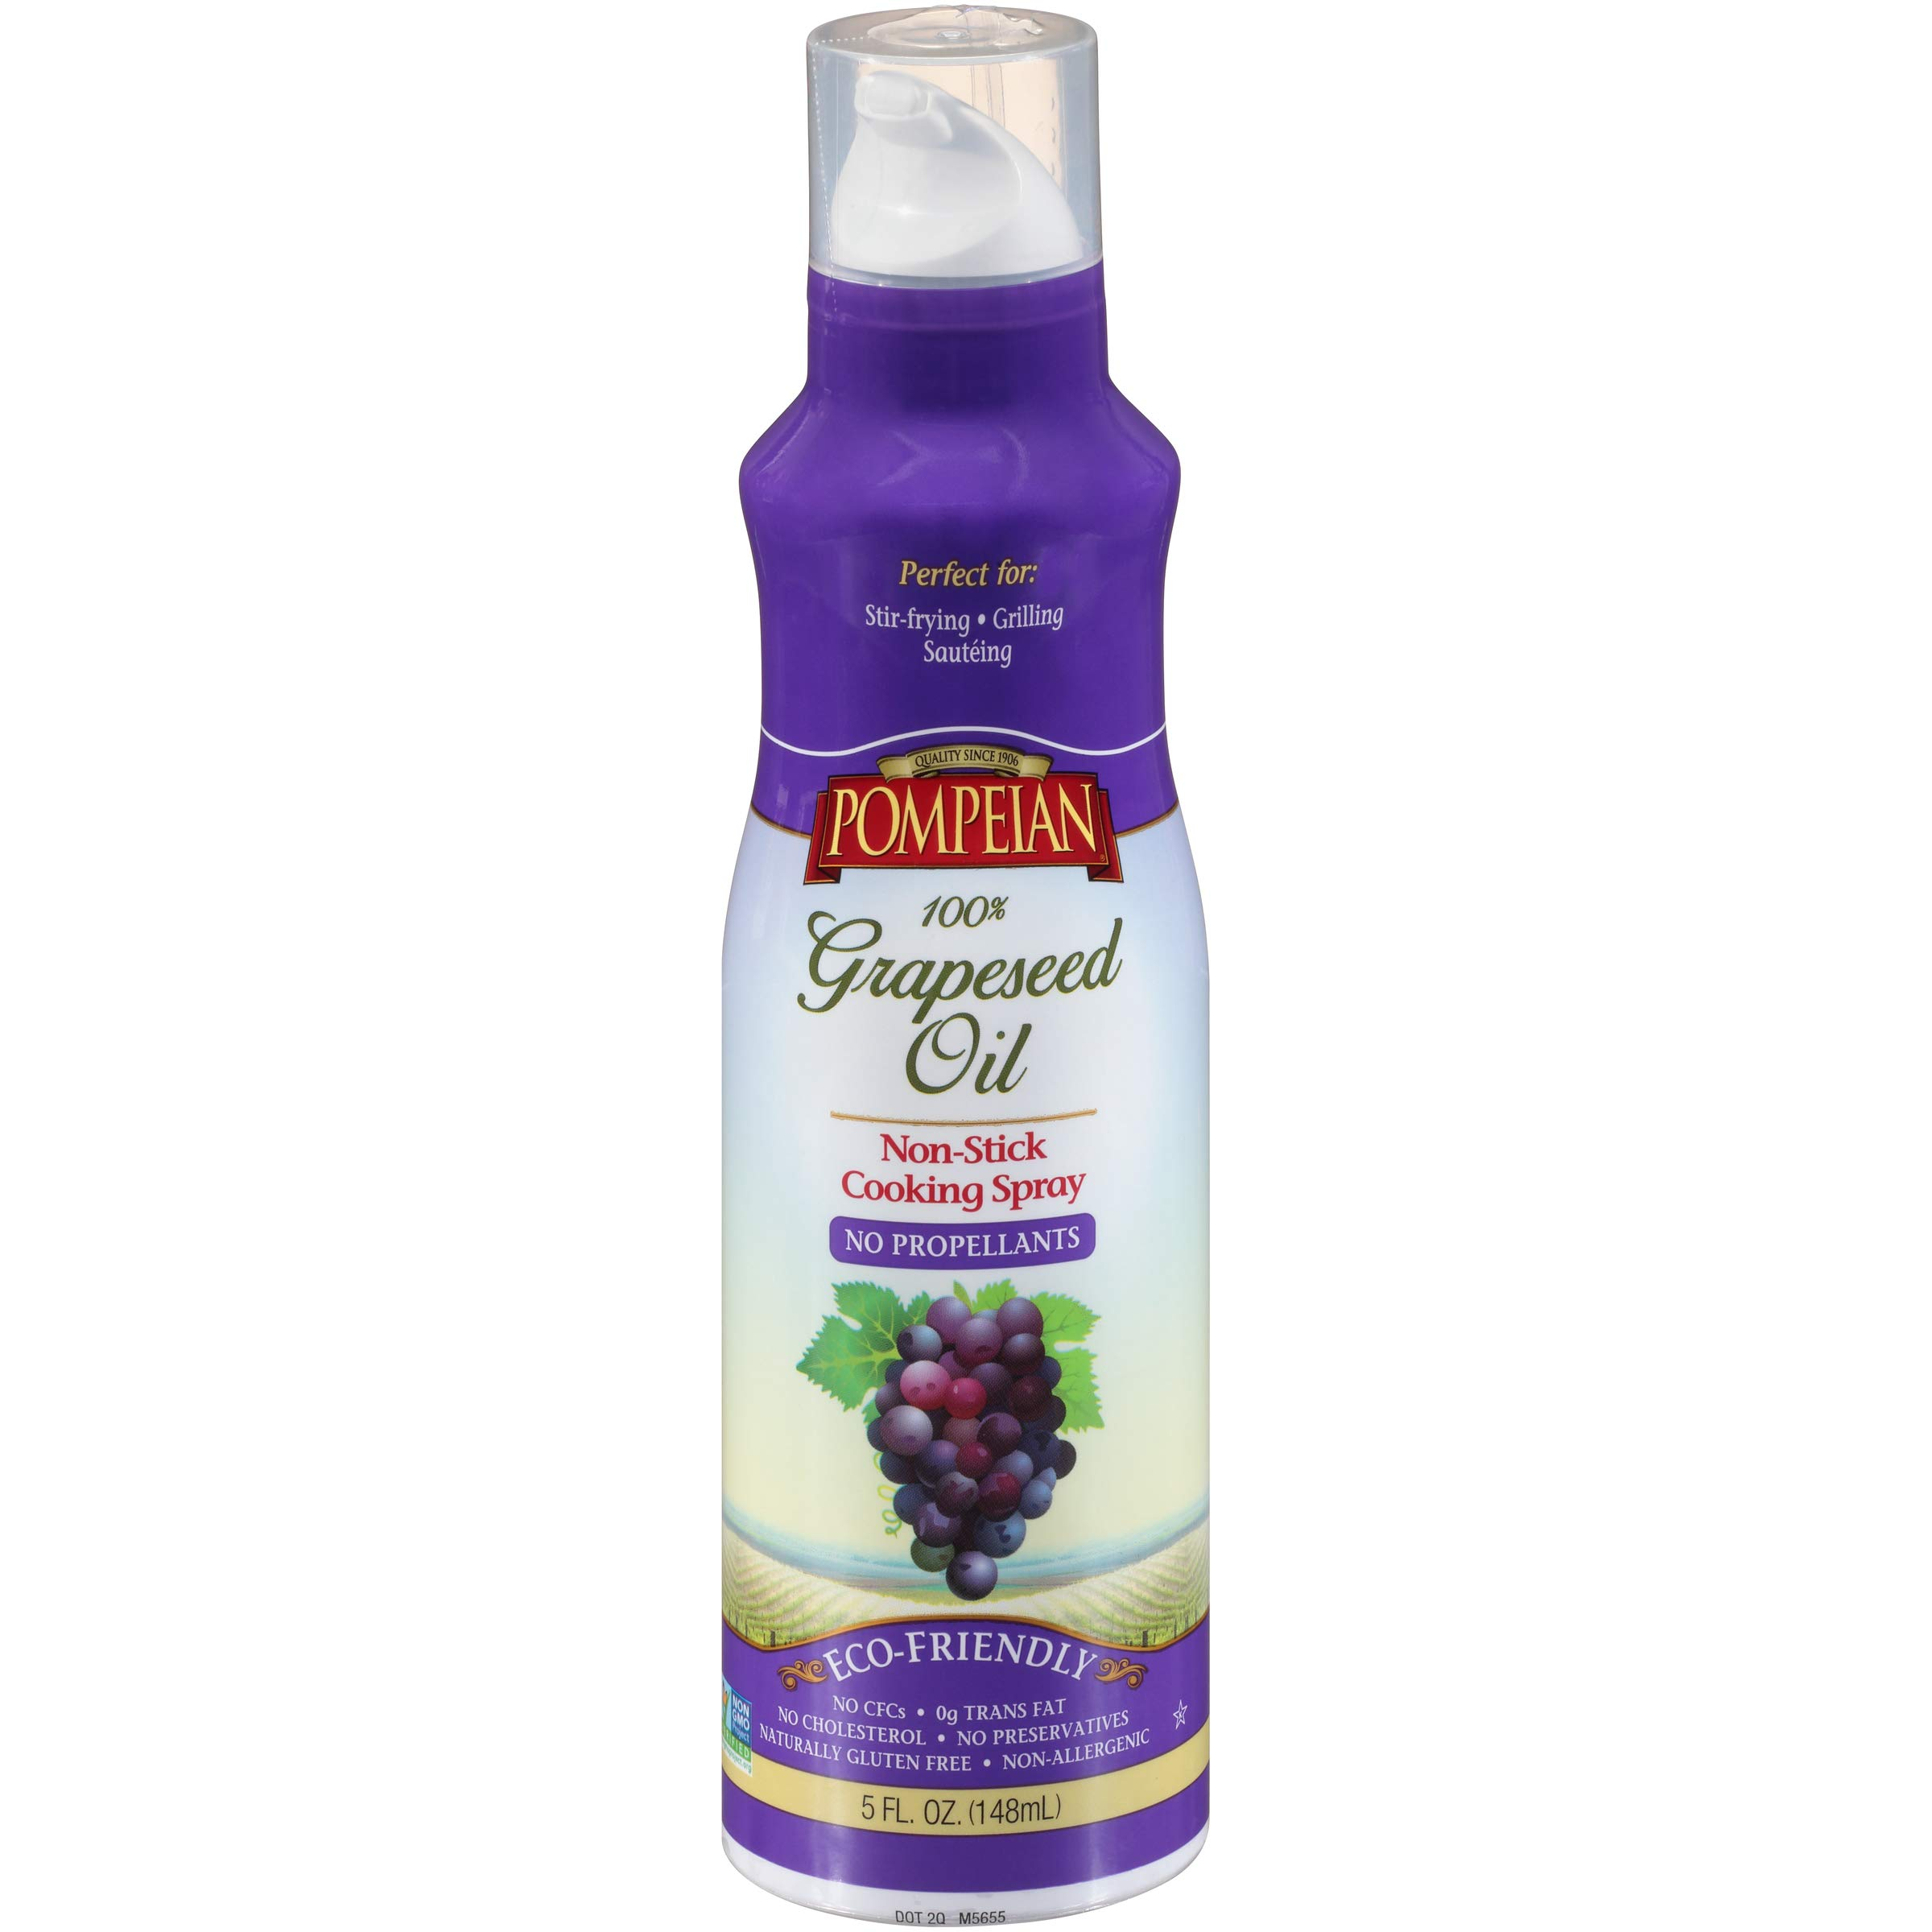 Pompeian 100% Grapeseed Oil Non-Stick Cooking Spray, Perfect for Stir-Frying, Grilling and Sauteing, Naturally Gluten Free, Non-GMO, No Propellants, 5 FL. OZ., Single Bottle